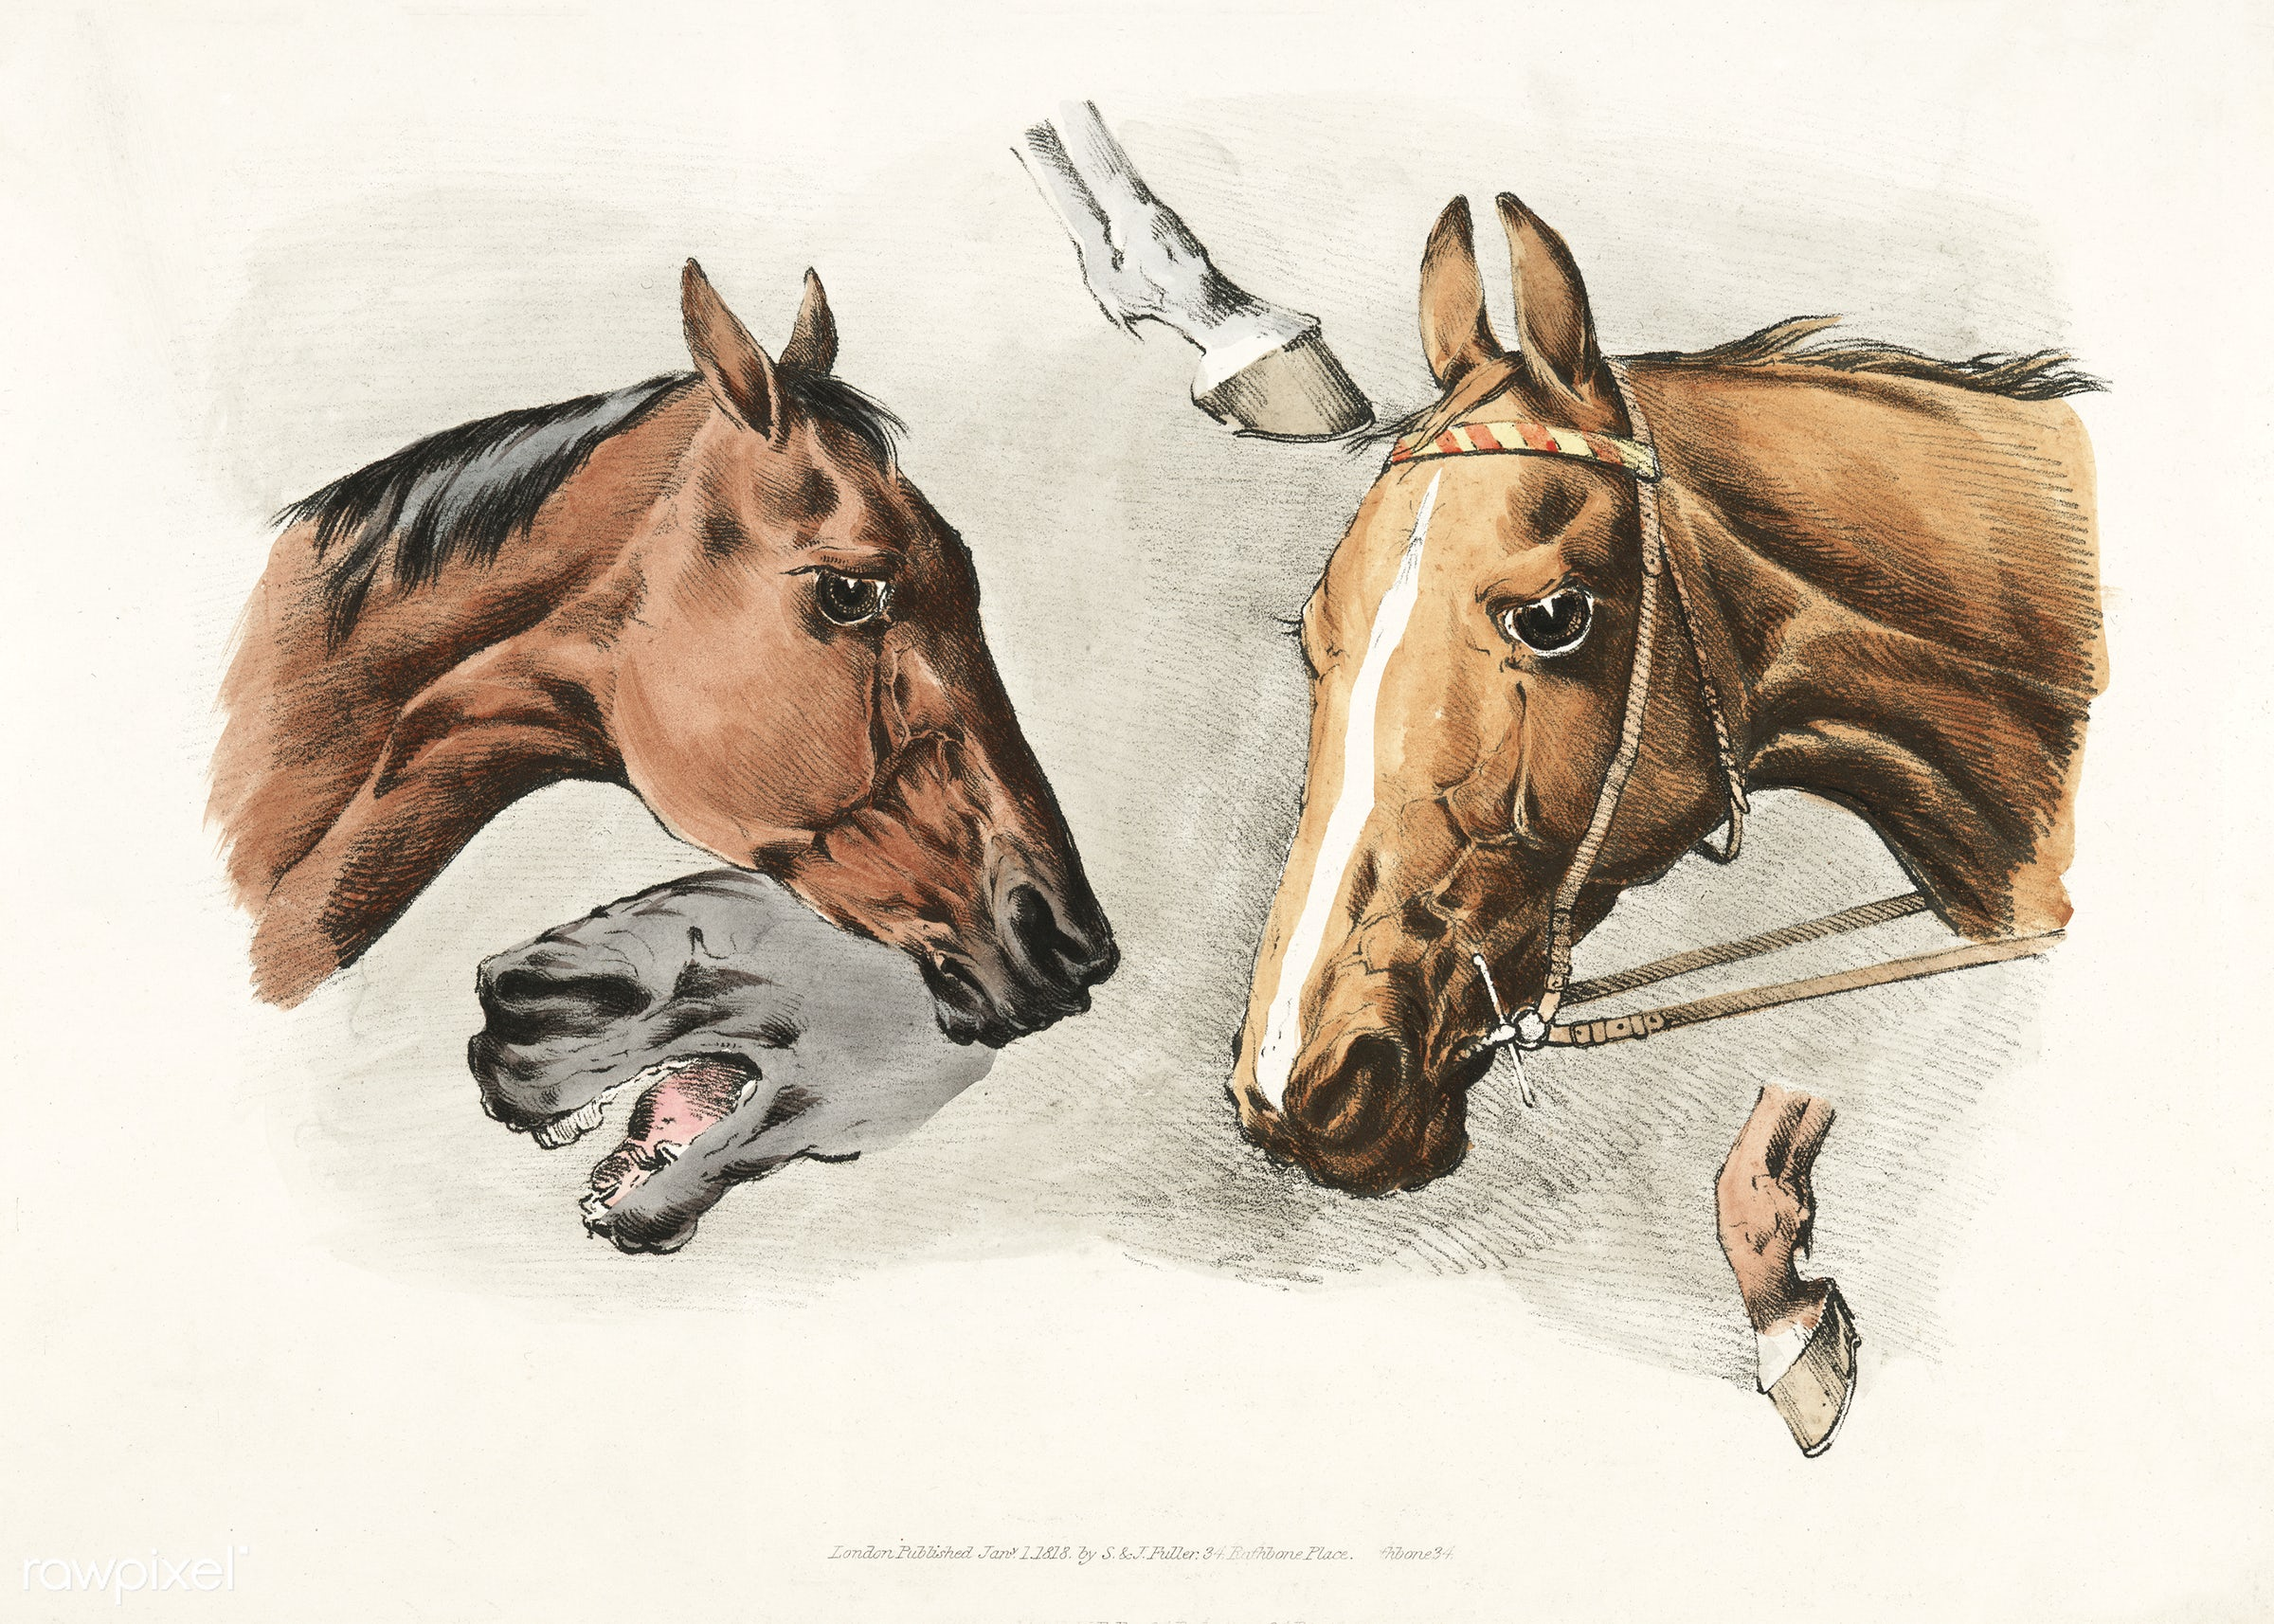 Illustration of horse heads and hoofs from Sporting Sketches (1817-1818) by Henry Alken (1784-1851). - animal, antique, cc0...